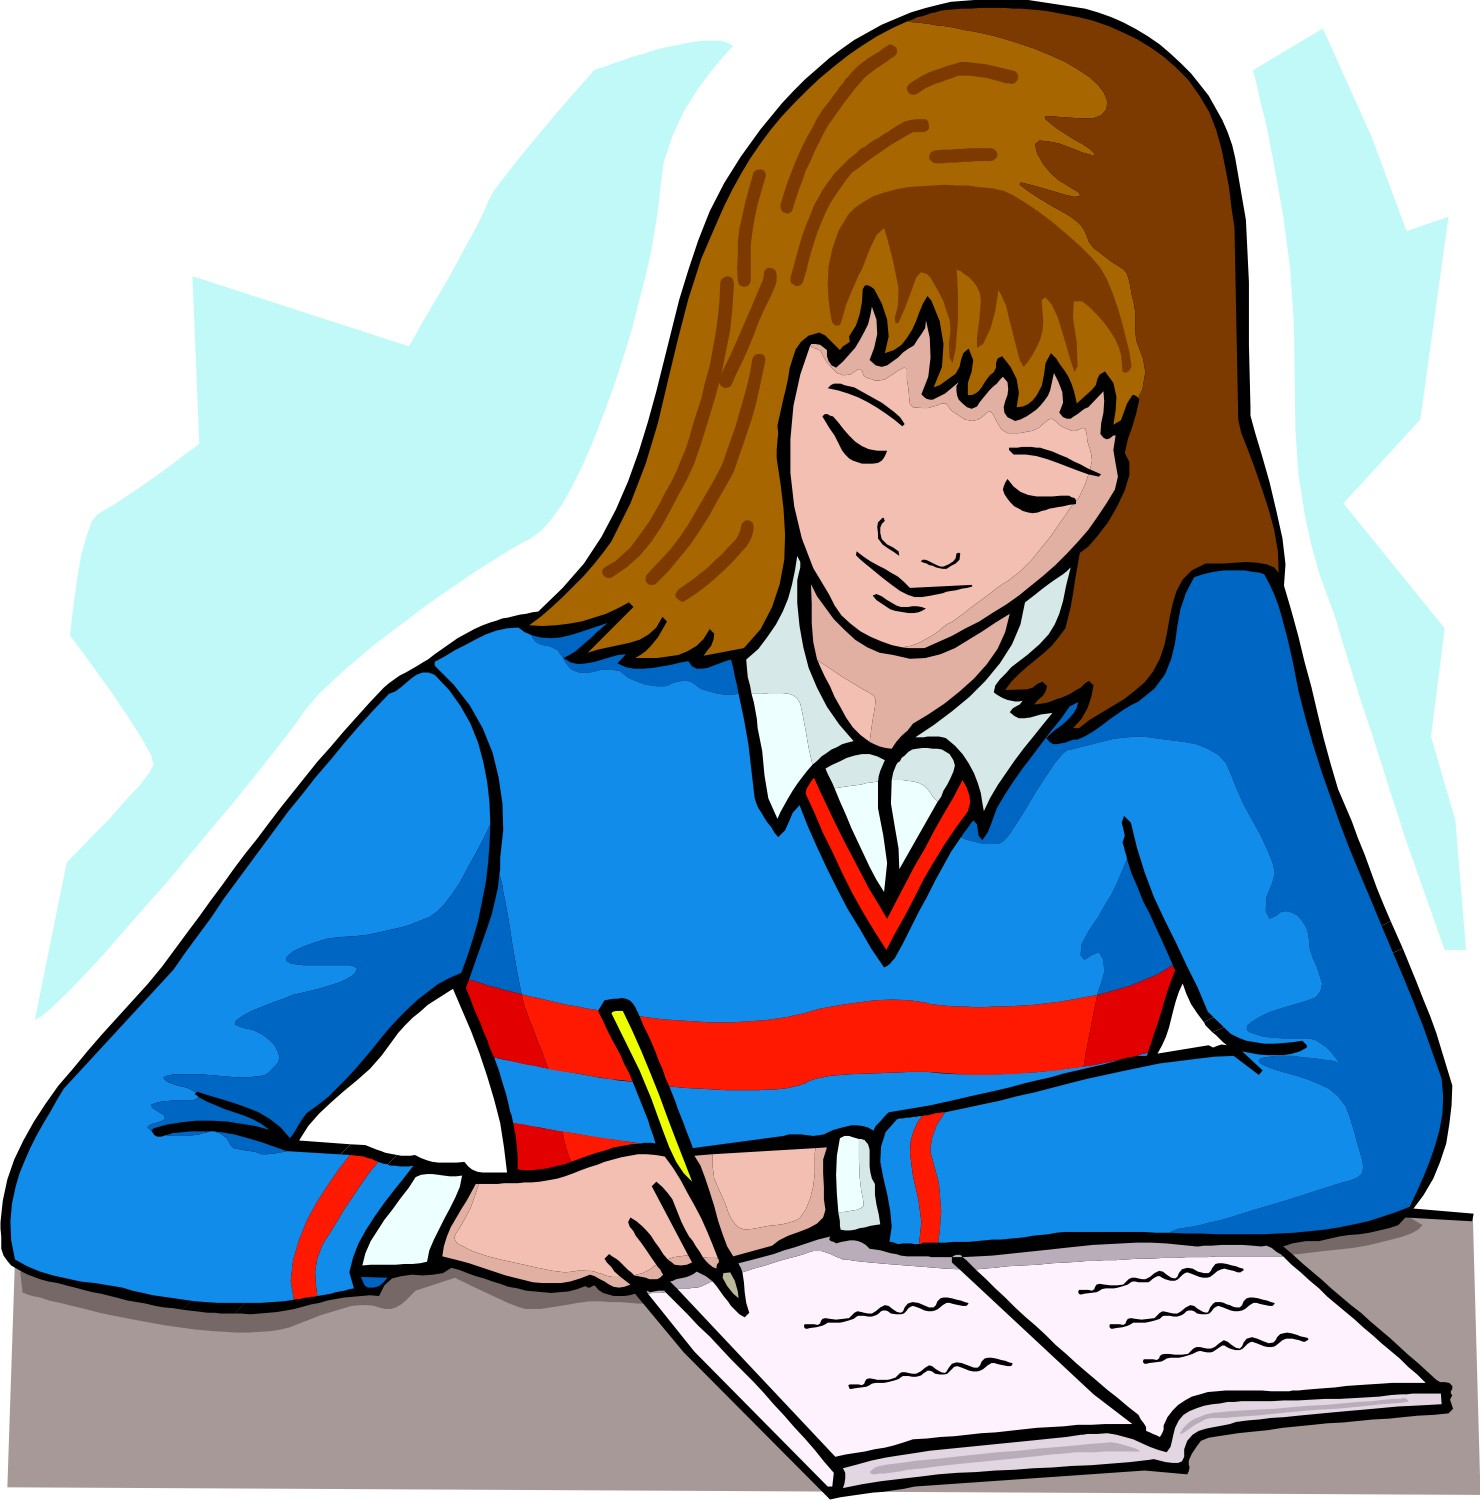 student writing clipart clipart kid help children do homework clipart buy a essay for cheap